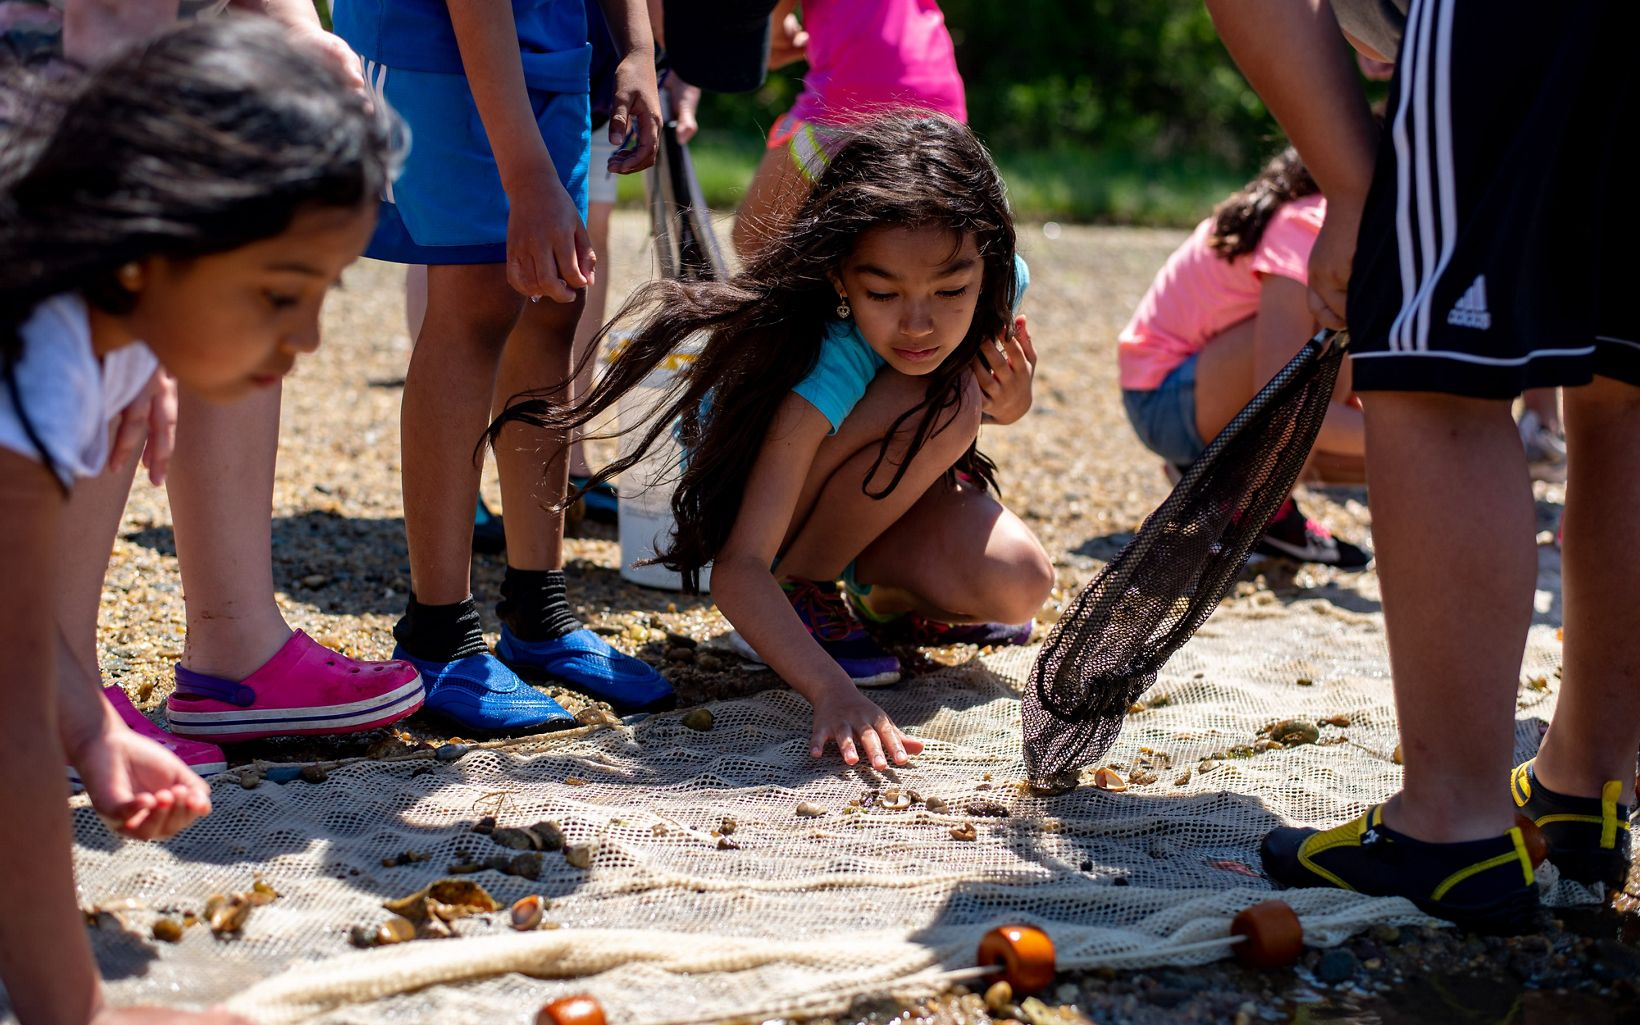 Kids kneel to sort through shells and minnows in a seine net on the beach.